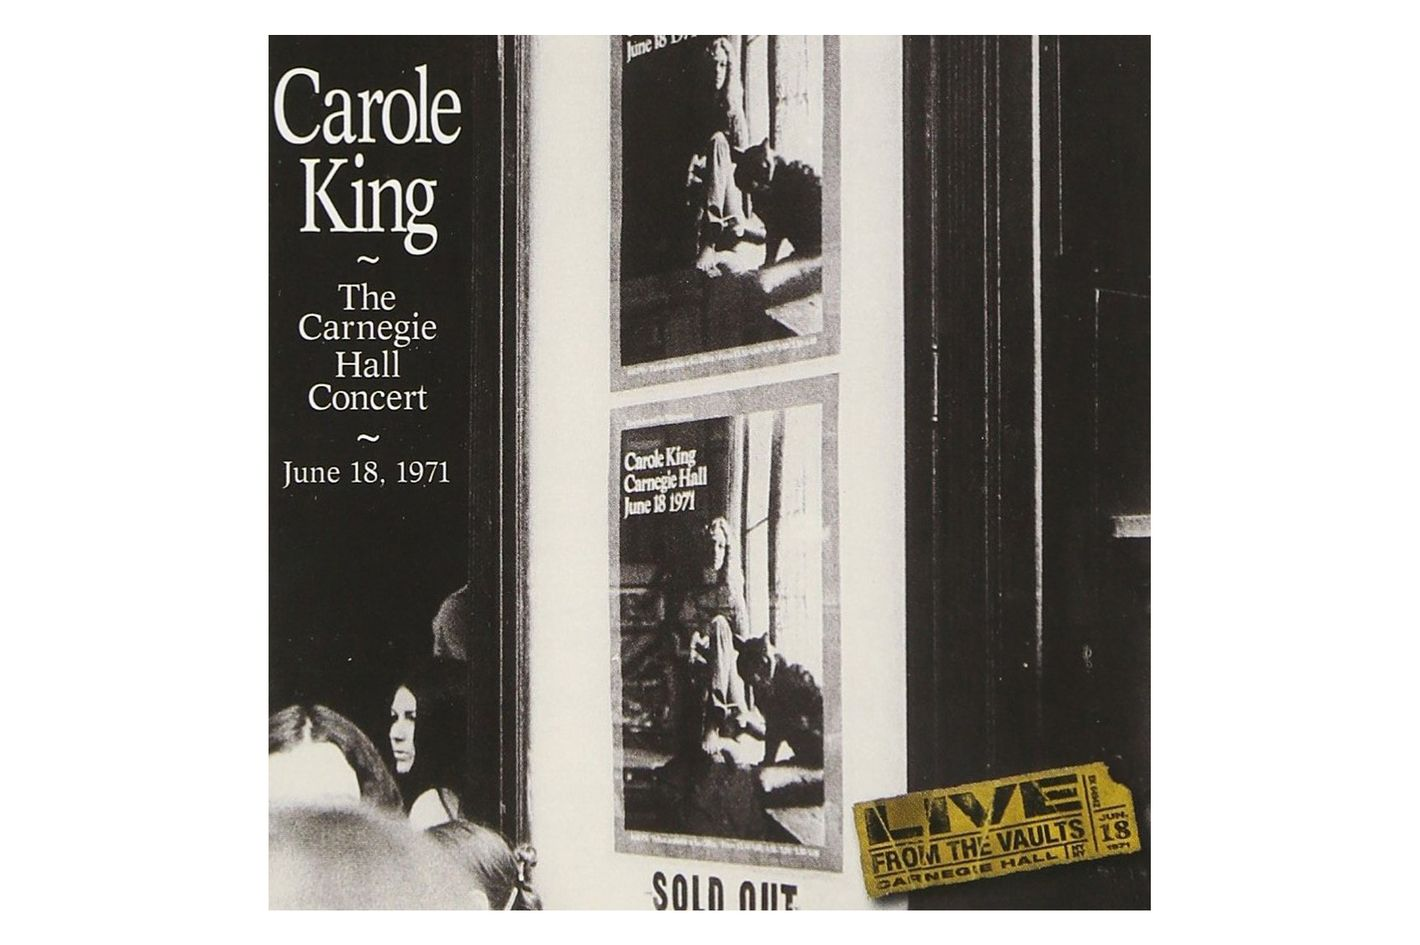 Carole King: The Carnegie Hall Concert, June 18, 1971